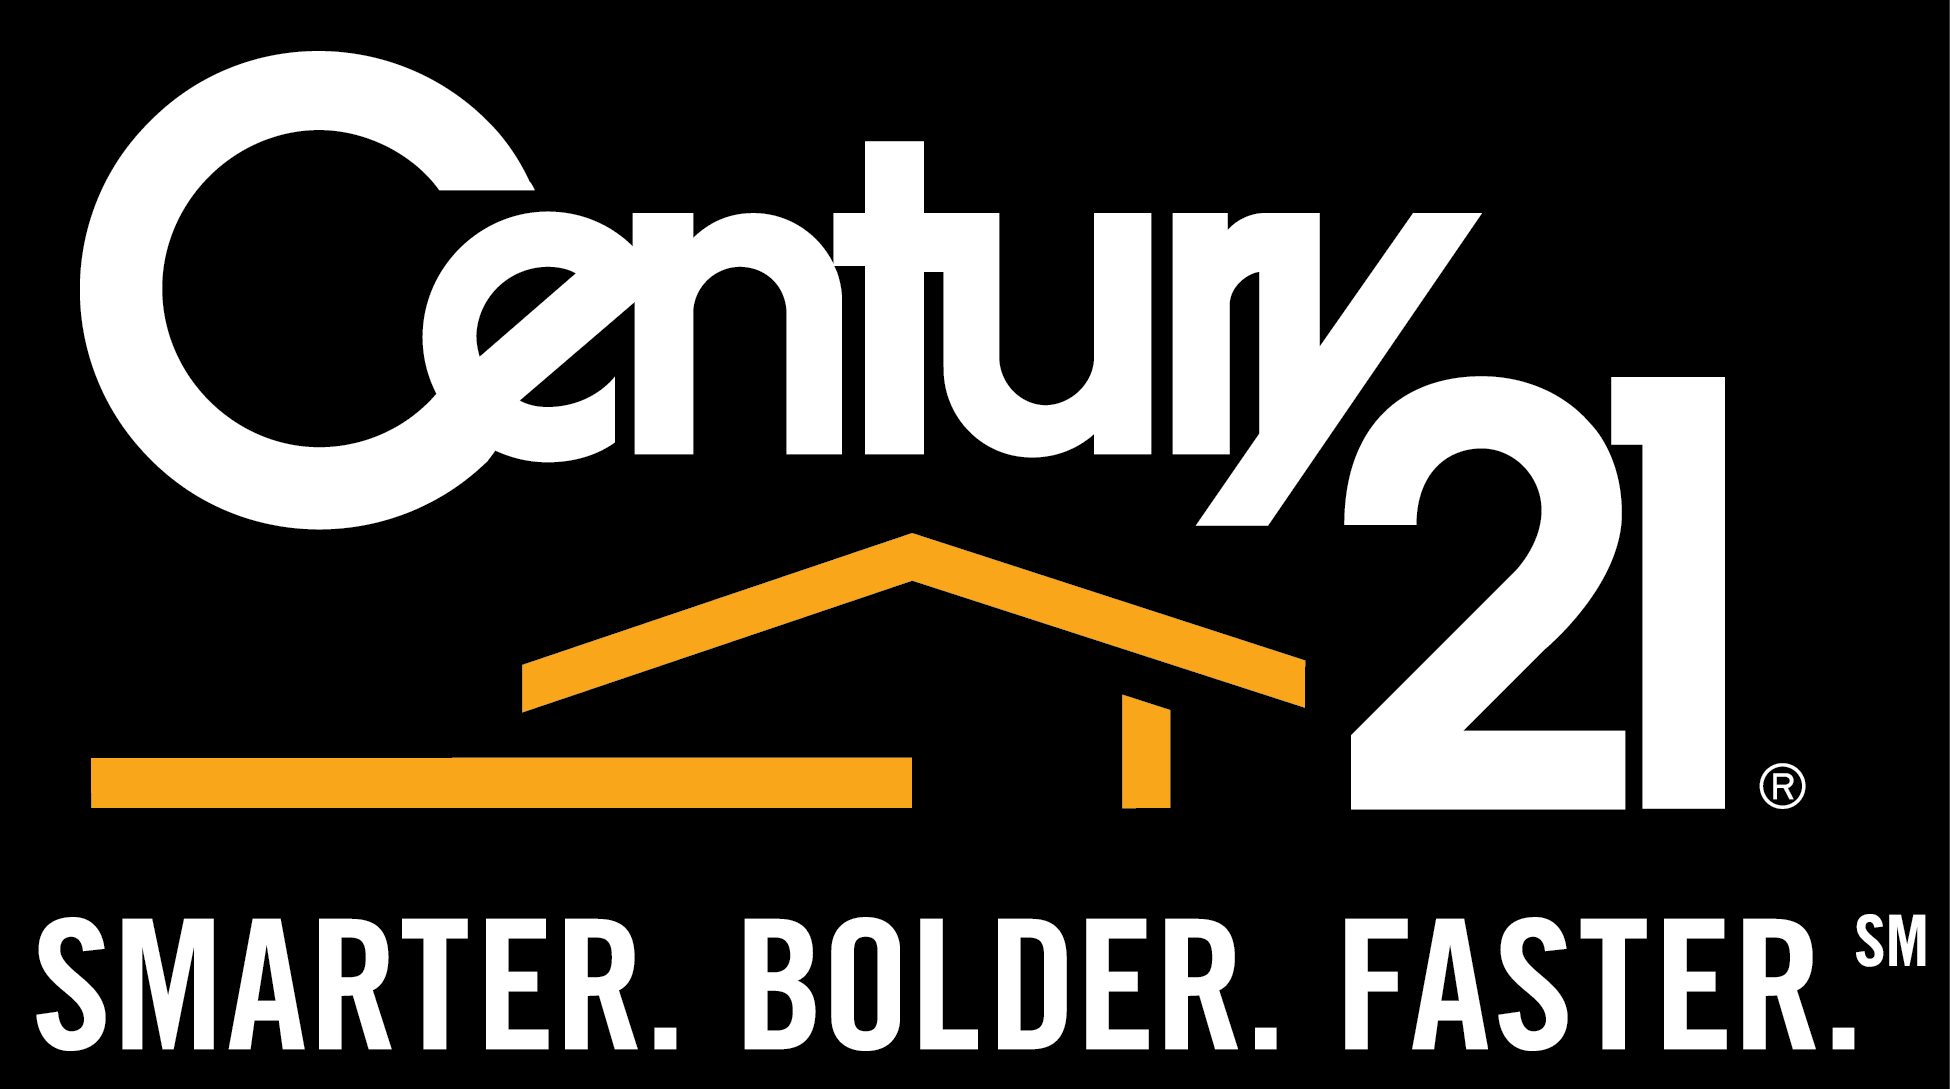 Century 21 Request Realty Inc - Windsor, ON N8T 1C3 - (519)944-2121 | ShowMeLocal.com